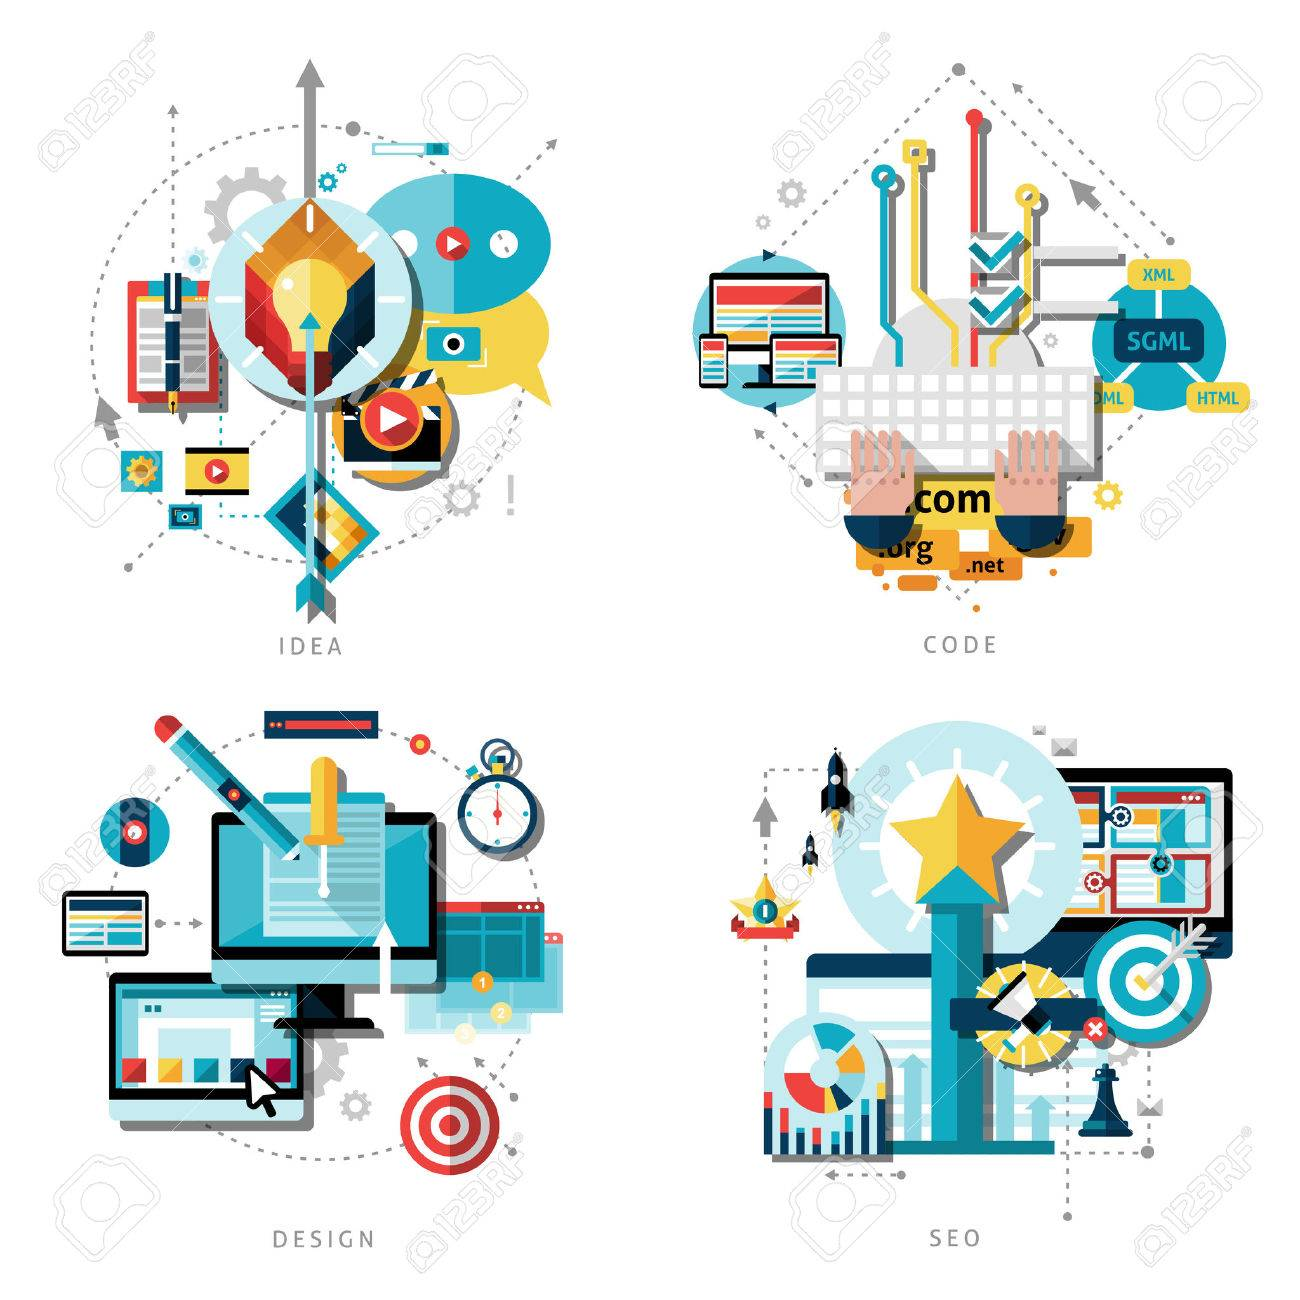 https://previews.123rf.com/images/macrovector/macrovector1510/macrovector151000238/45806285-creative-work-and-ideas-icons-set-with-computer-design-projects-and-success-flat-isolated-vector-ill.jpg